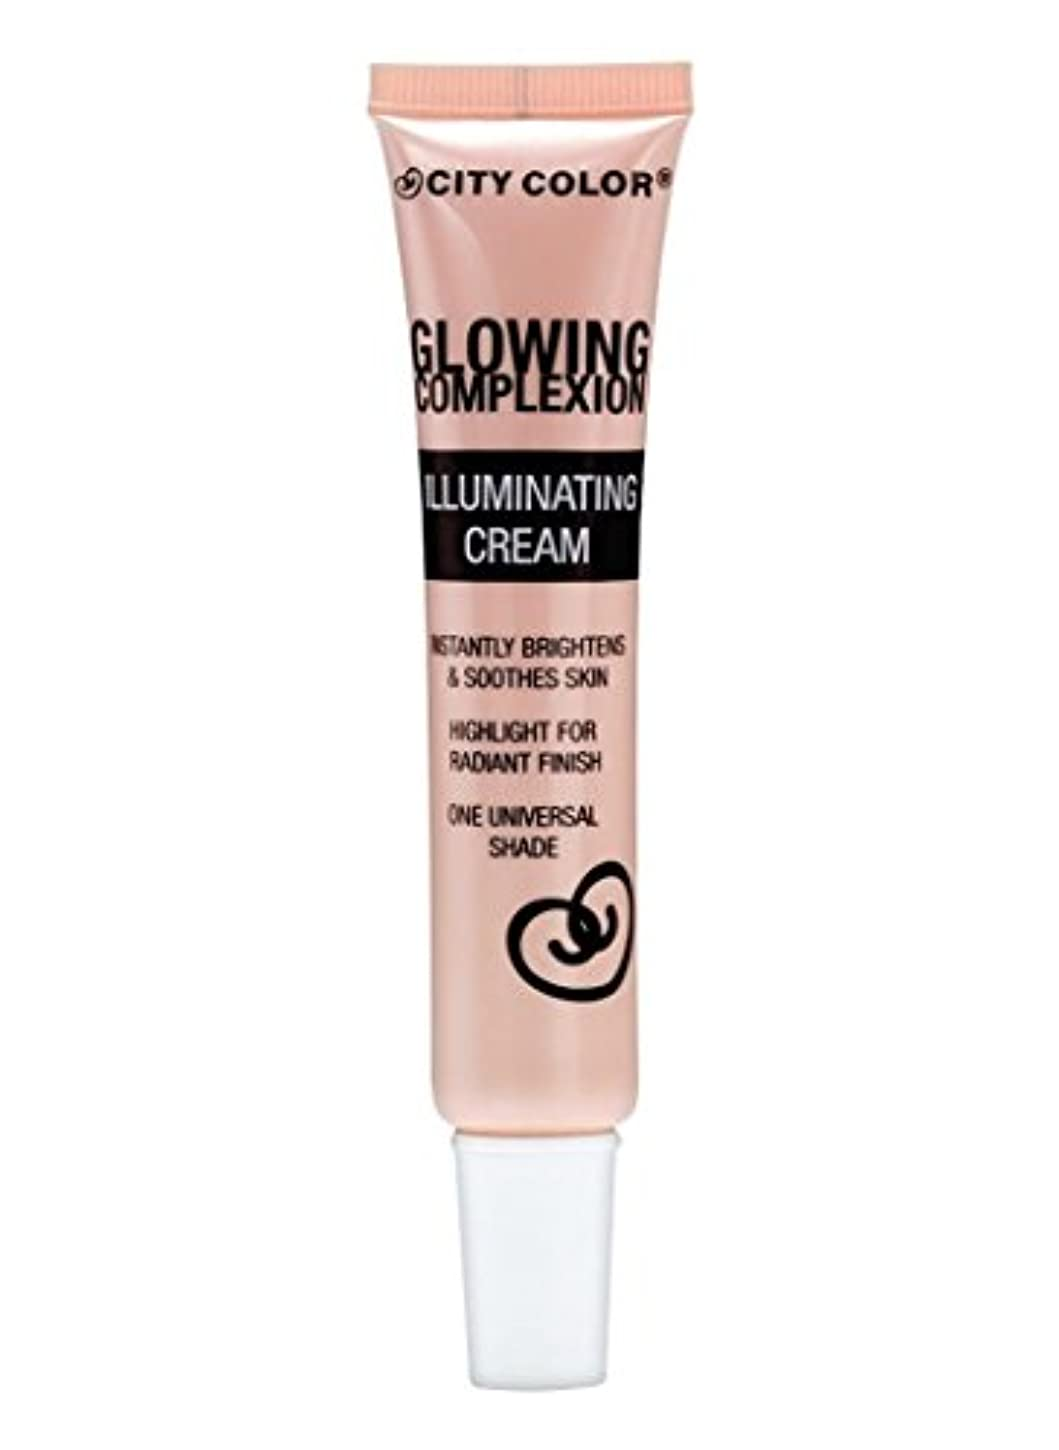 で出来ている北東喉が渇いたCITY COLOR Glowing Complexion Illuminating Cream - Net Wt. 1.015 fl. oz. / 30 mL (並行輸入品)